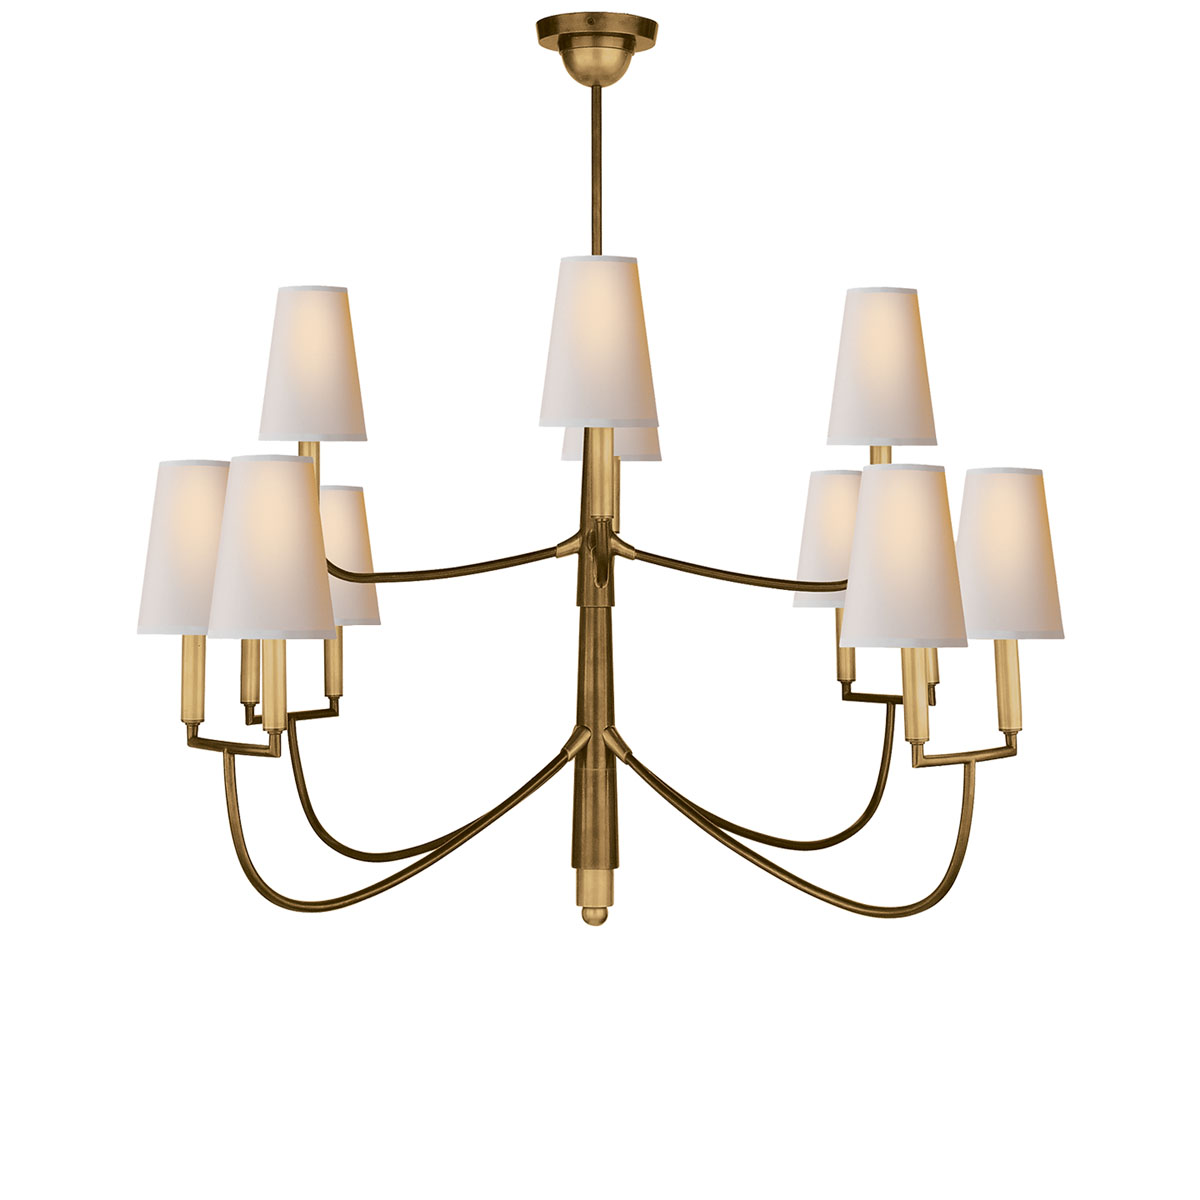 Hand-Rubbed Antique Brass Finish Natural Paper Shade - Visual Comfort Large Farlane Chandelier, Chandelier Neenas Lighting